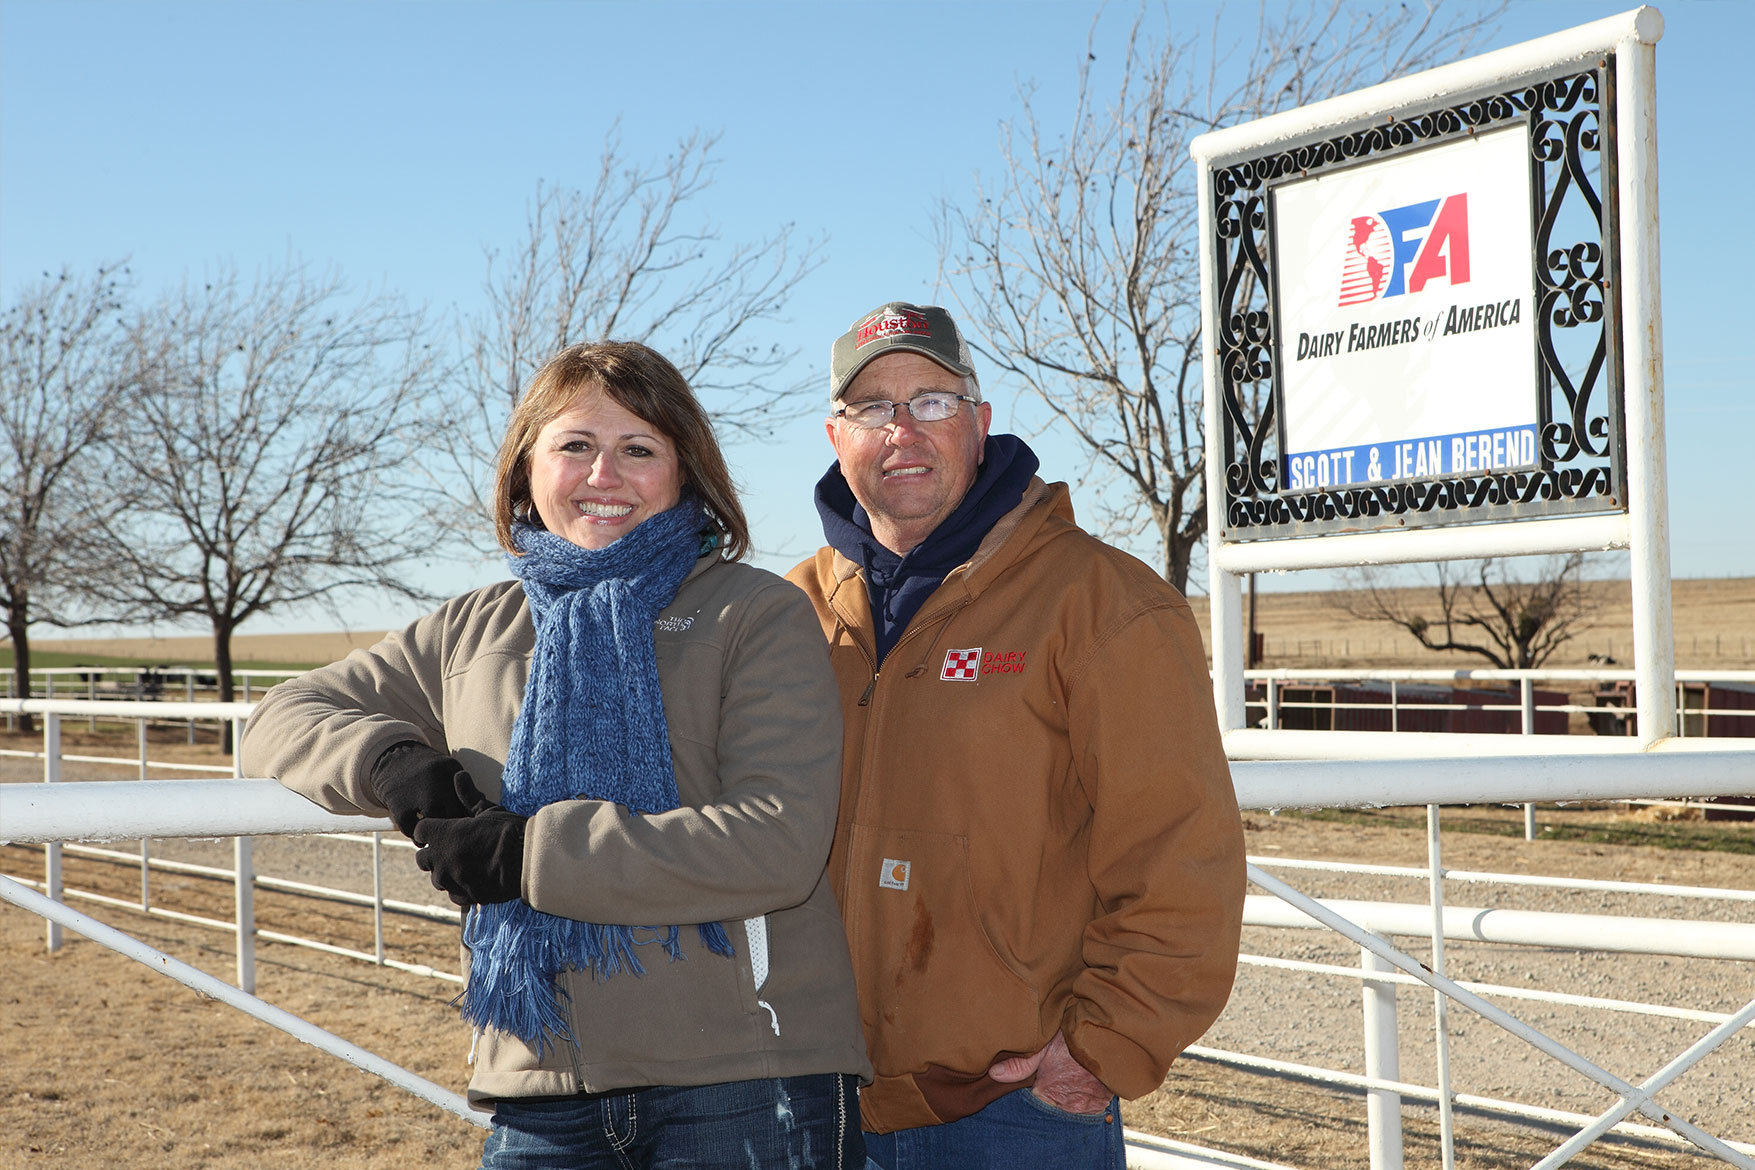 Scott and Jean Berend pose for a photo in front of their dairy sign.